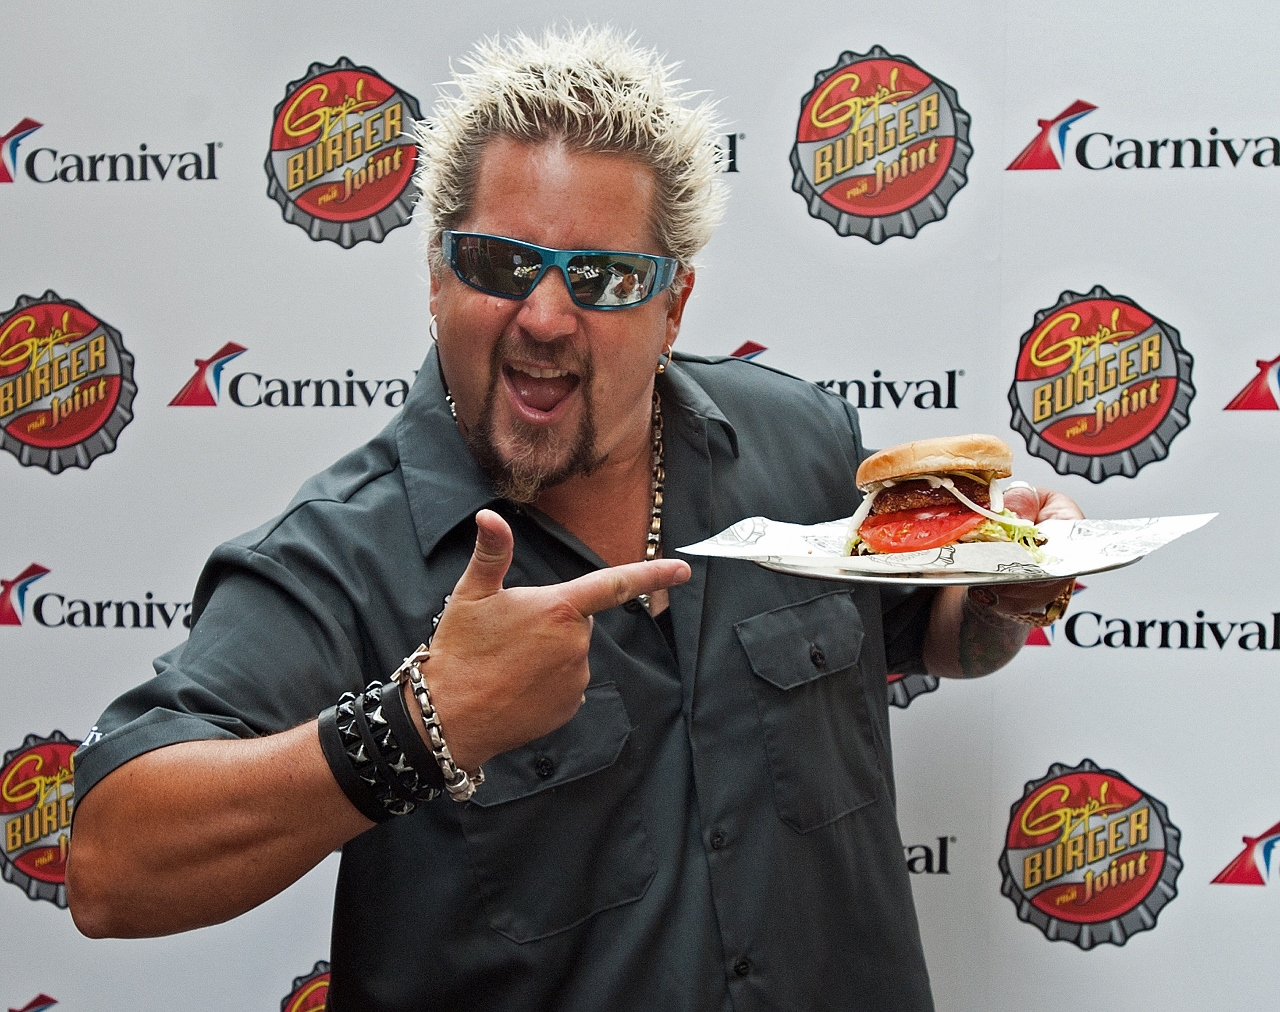 Guy Fieri is the man behind Guy's Burger Joint on Carnival Spirit.